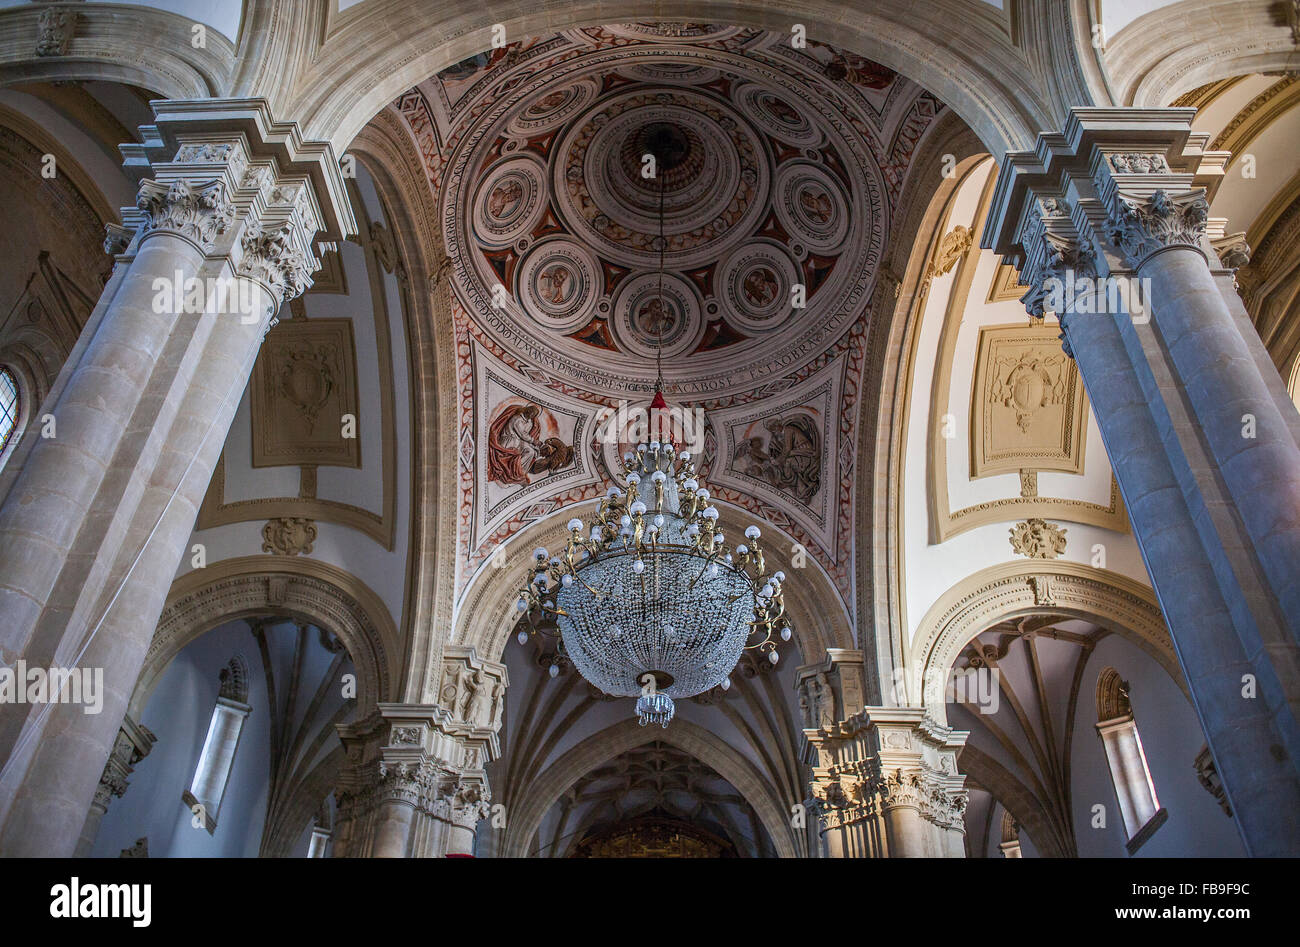 Cathedral, Baeza. Jaen province, Andalucia, Spain - Stock Image